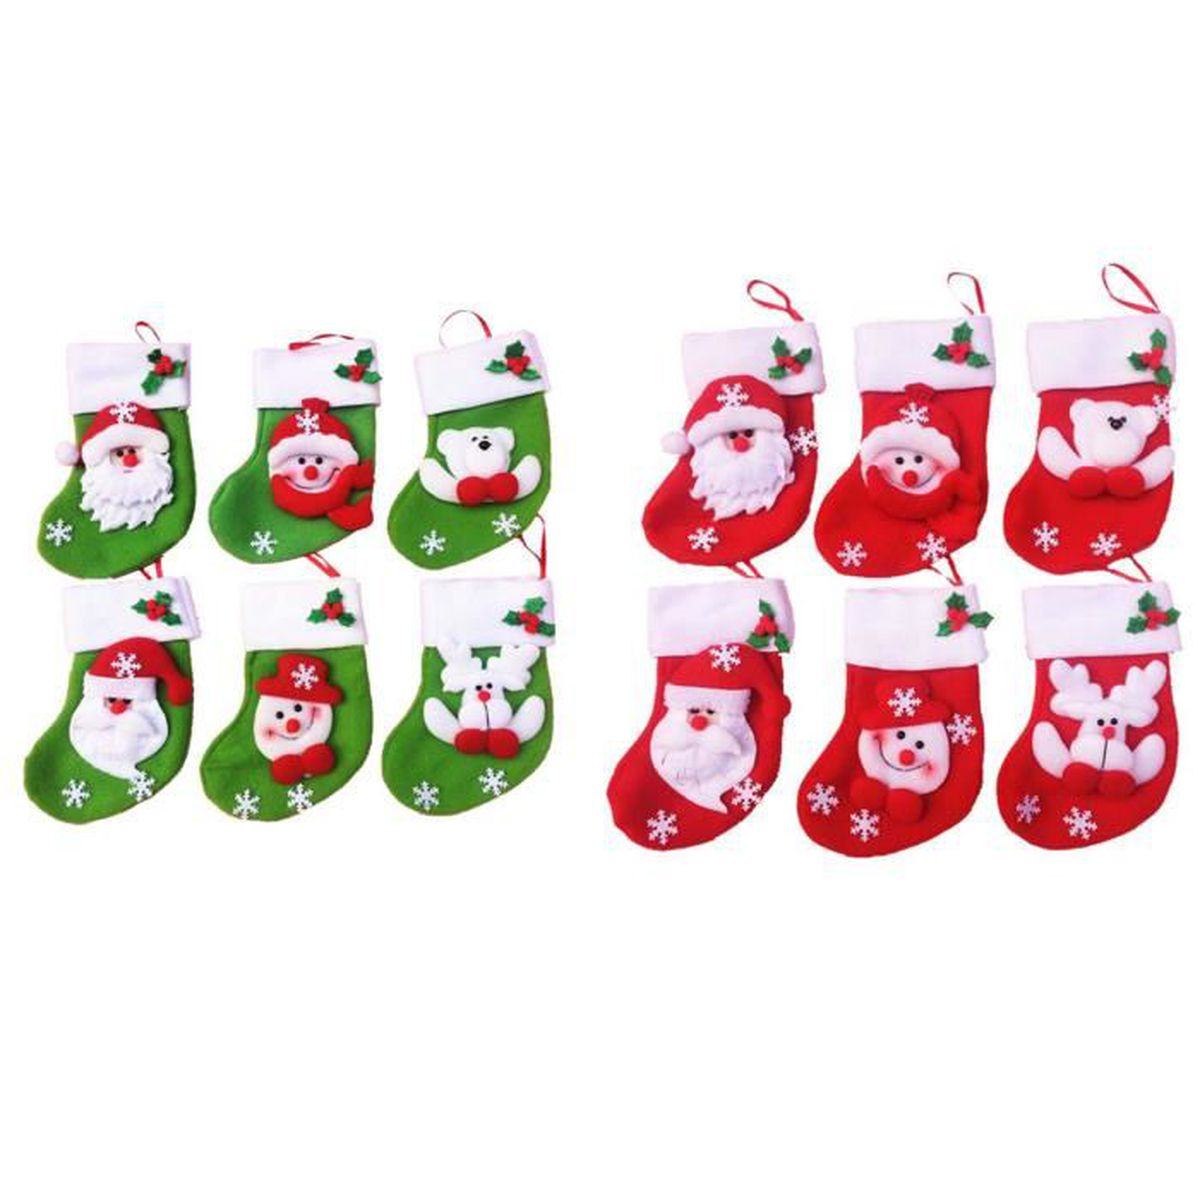 12 les d corations de no l de mini chaussettes de no l for Les decorations de noel